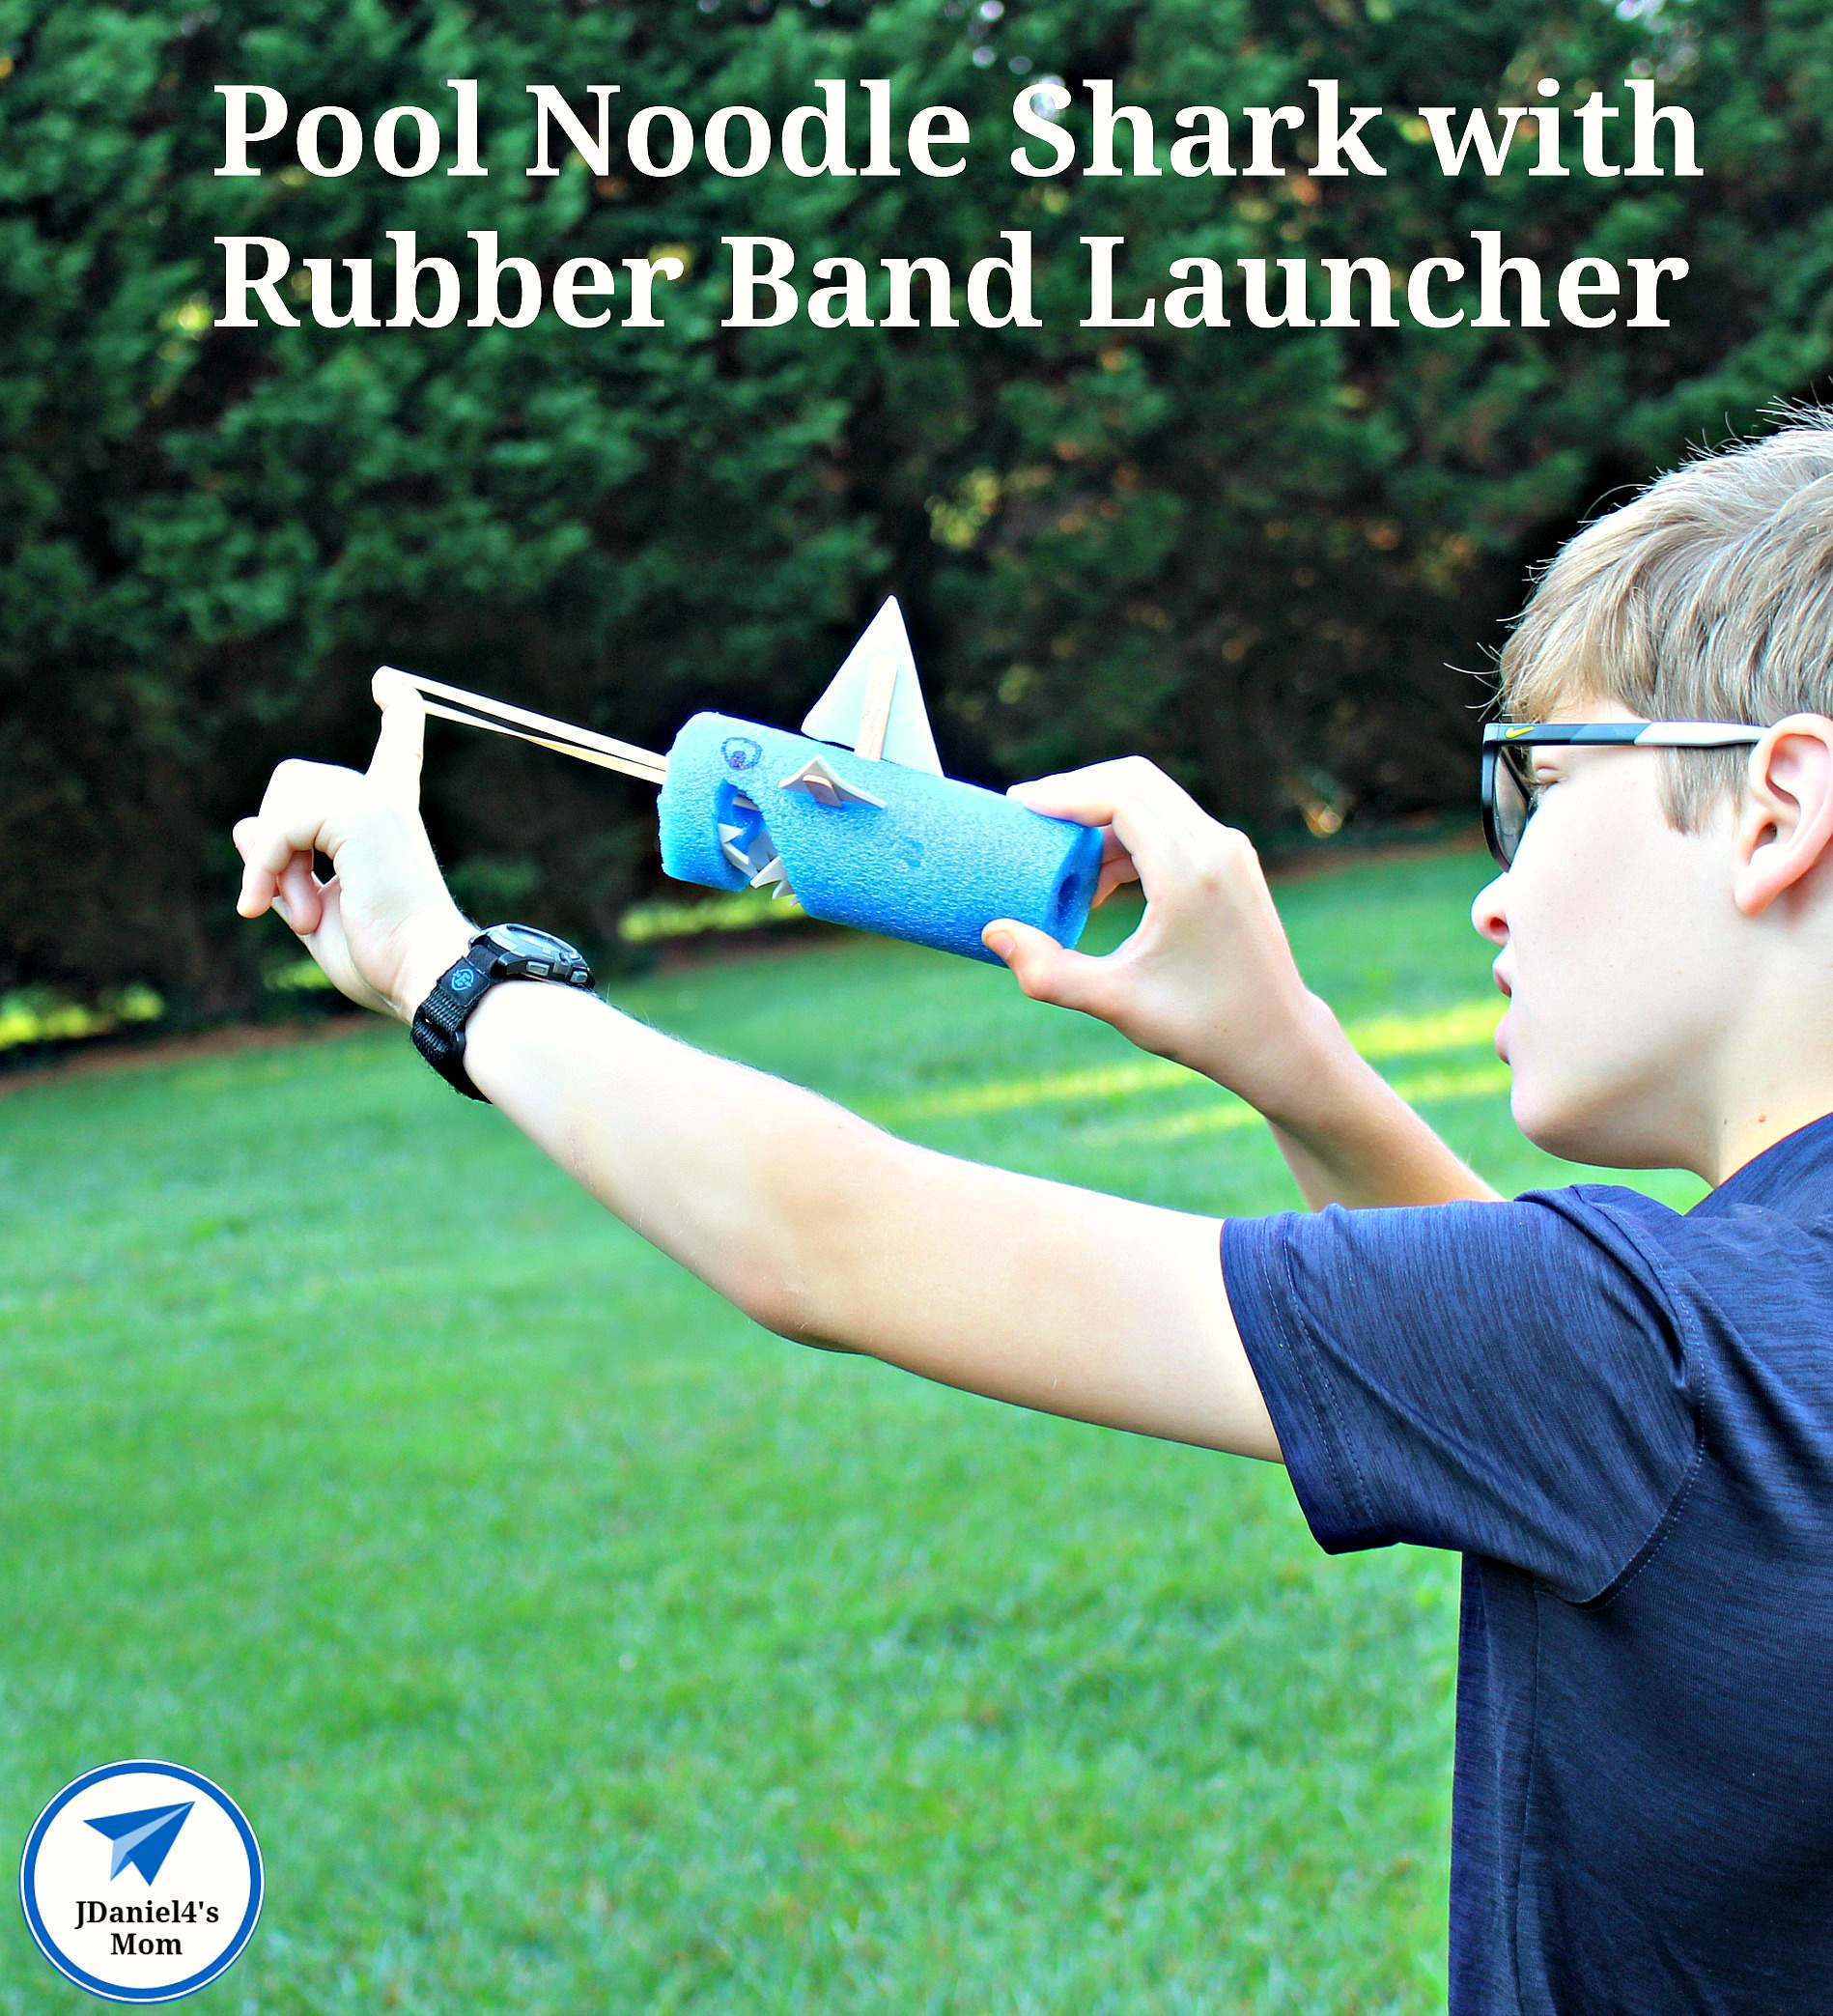 Pool Noodle Shark with Rubber Band Launcher